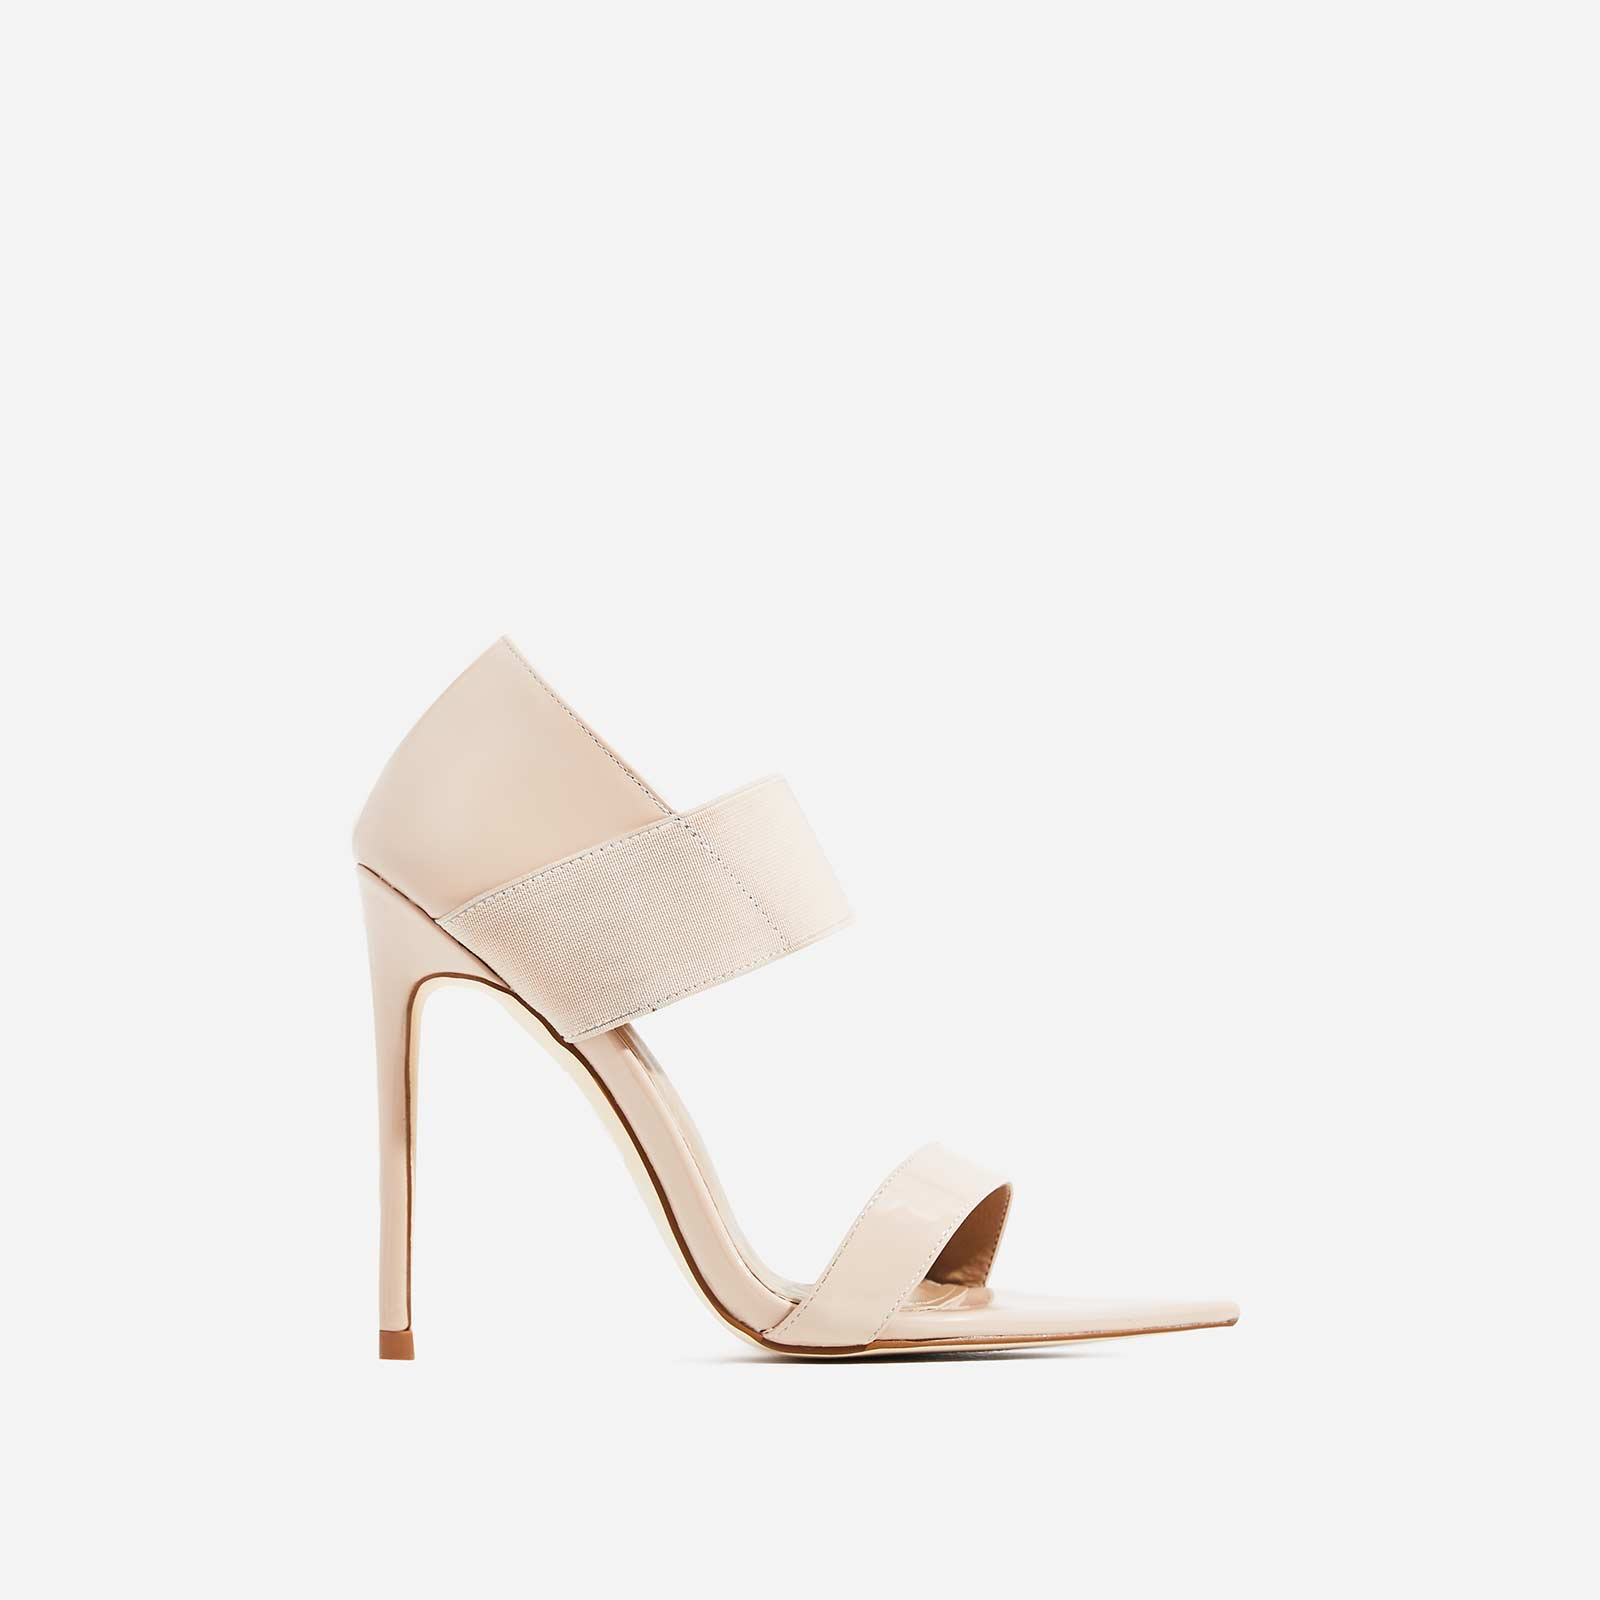 Erika Elasticated Pointed Peep Toe Heel In Nude Patent